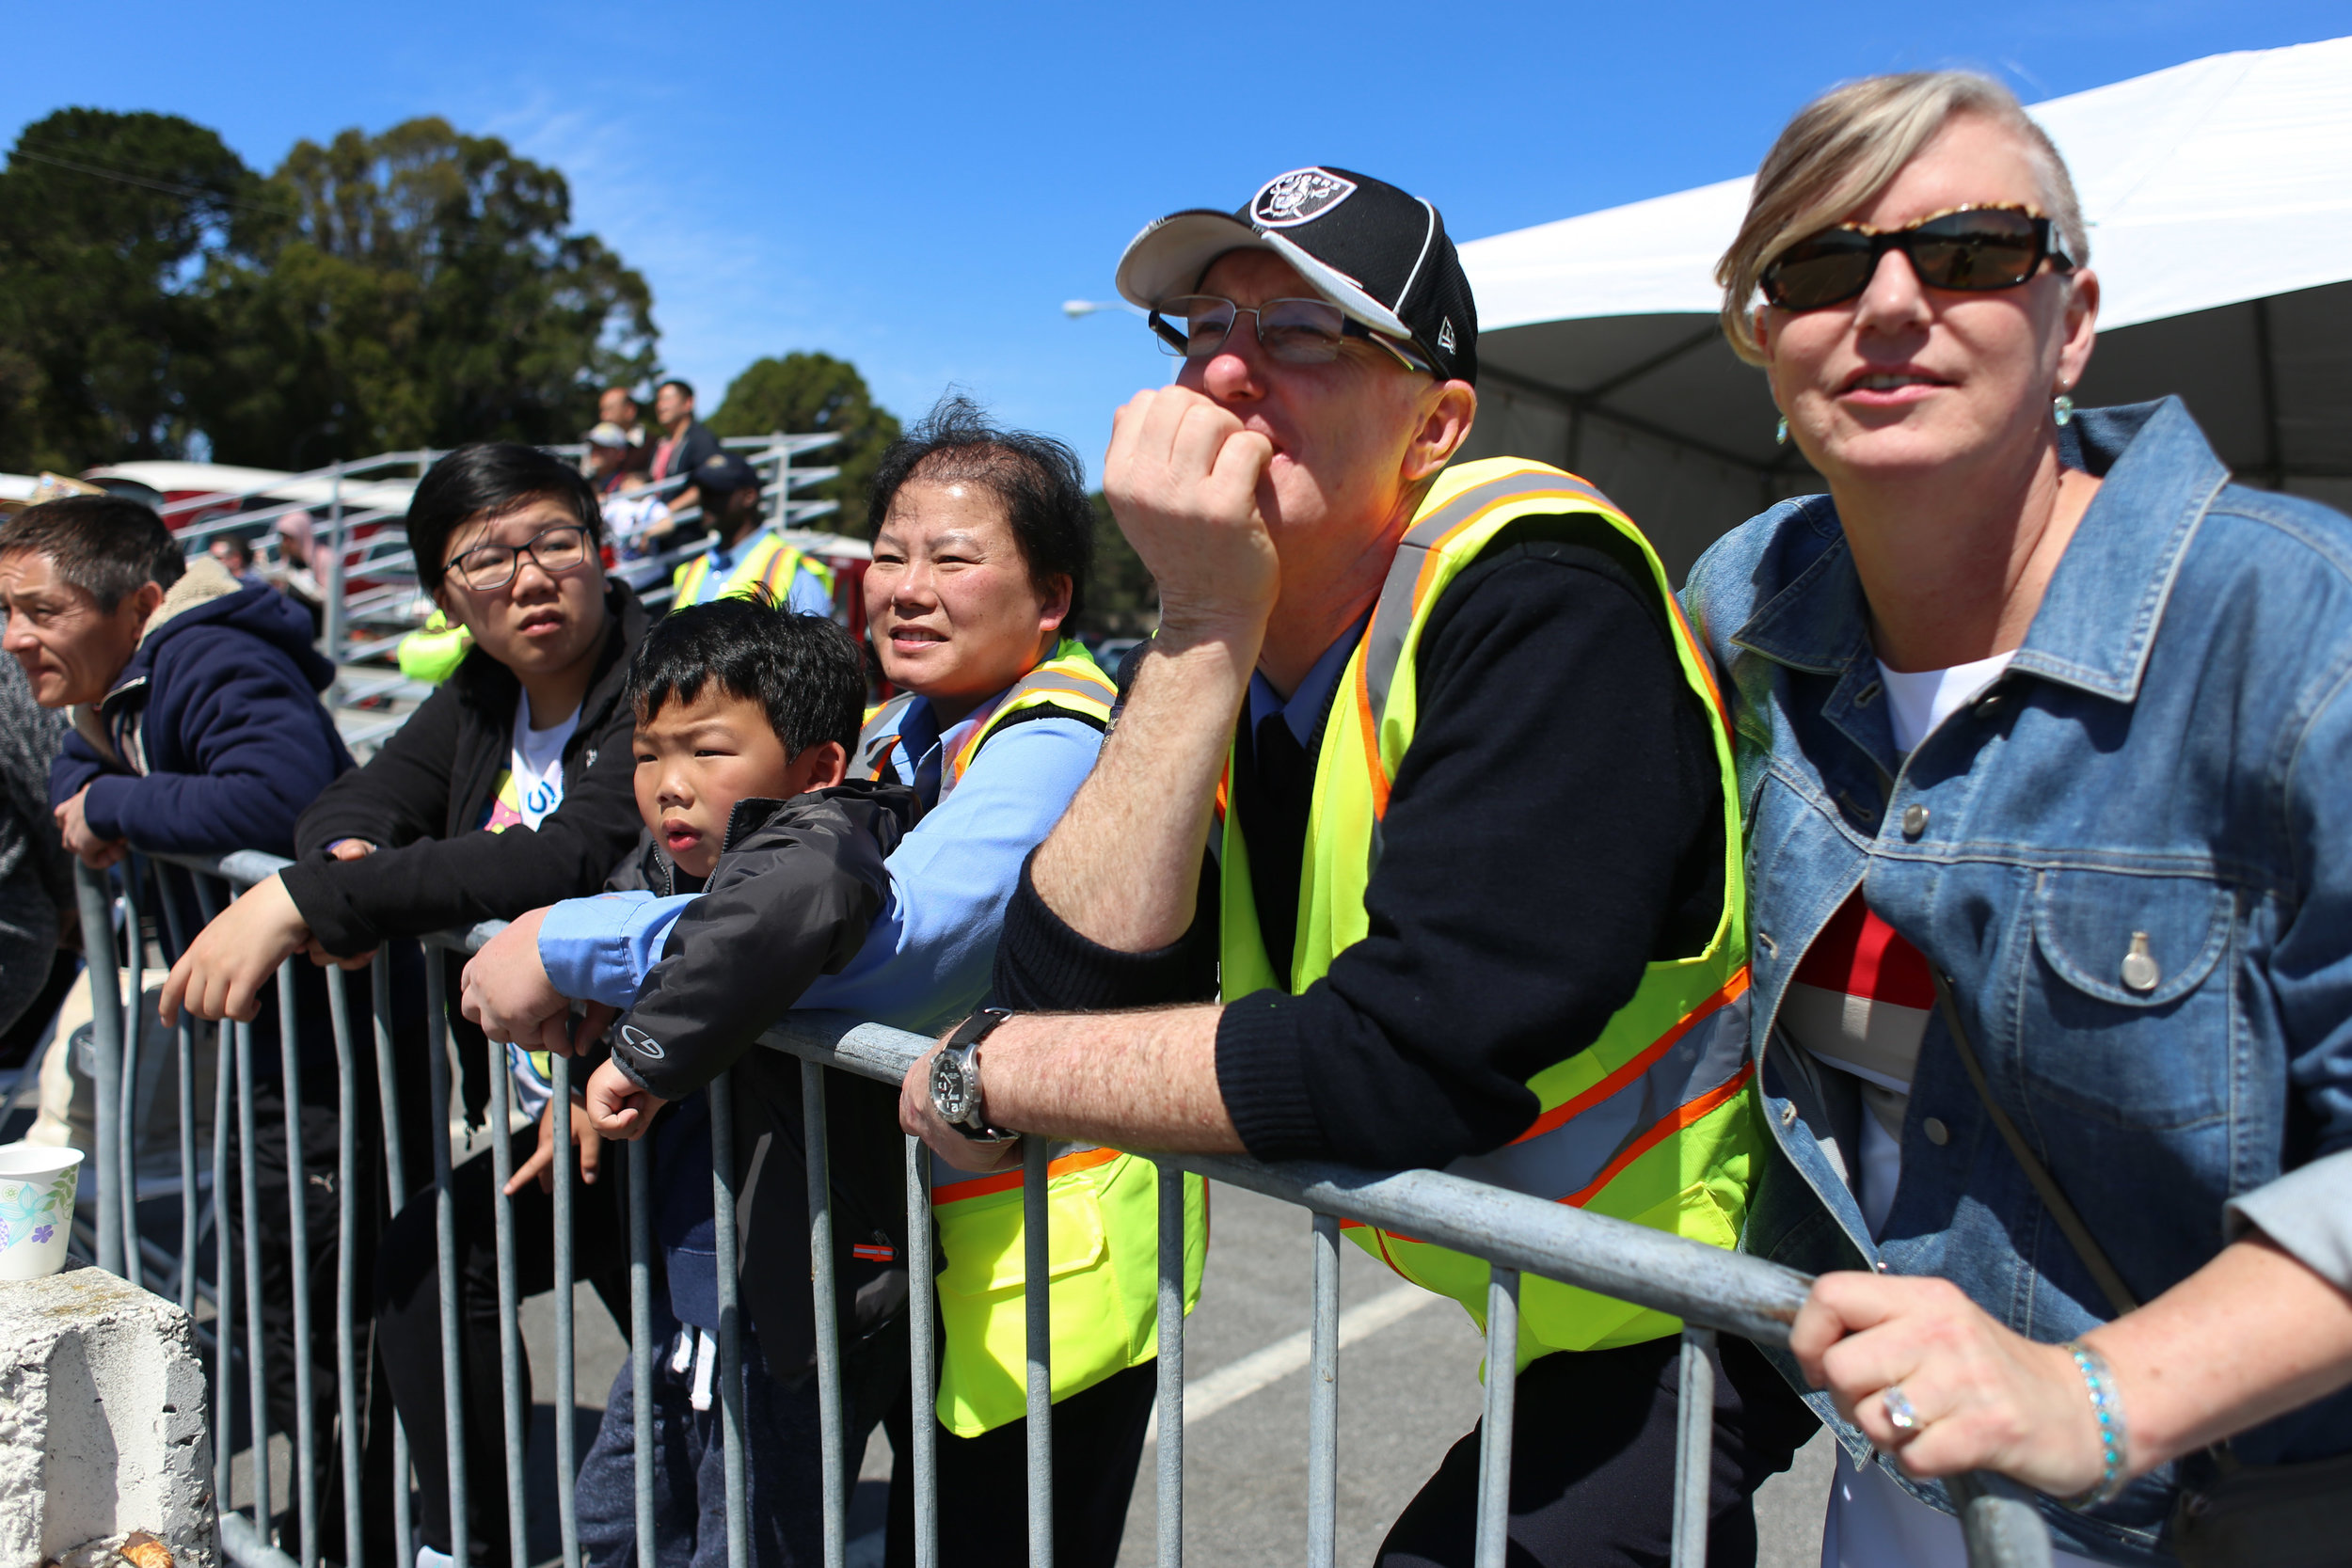 SFMTA operators, family members and friends watch SFMTA operators compete in San Francisco's 31st bus road-eo where bus operators compete in a series of driving and safety test including an obstacle course showcasing the drivers best skills at Cow Palace Saturday, April 2, 2016. Winners of the competition advance to the American Public Transportation Association International Road-eo. (Emma Chiang/Special to S.F. Examiner)